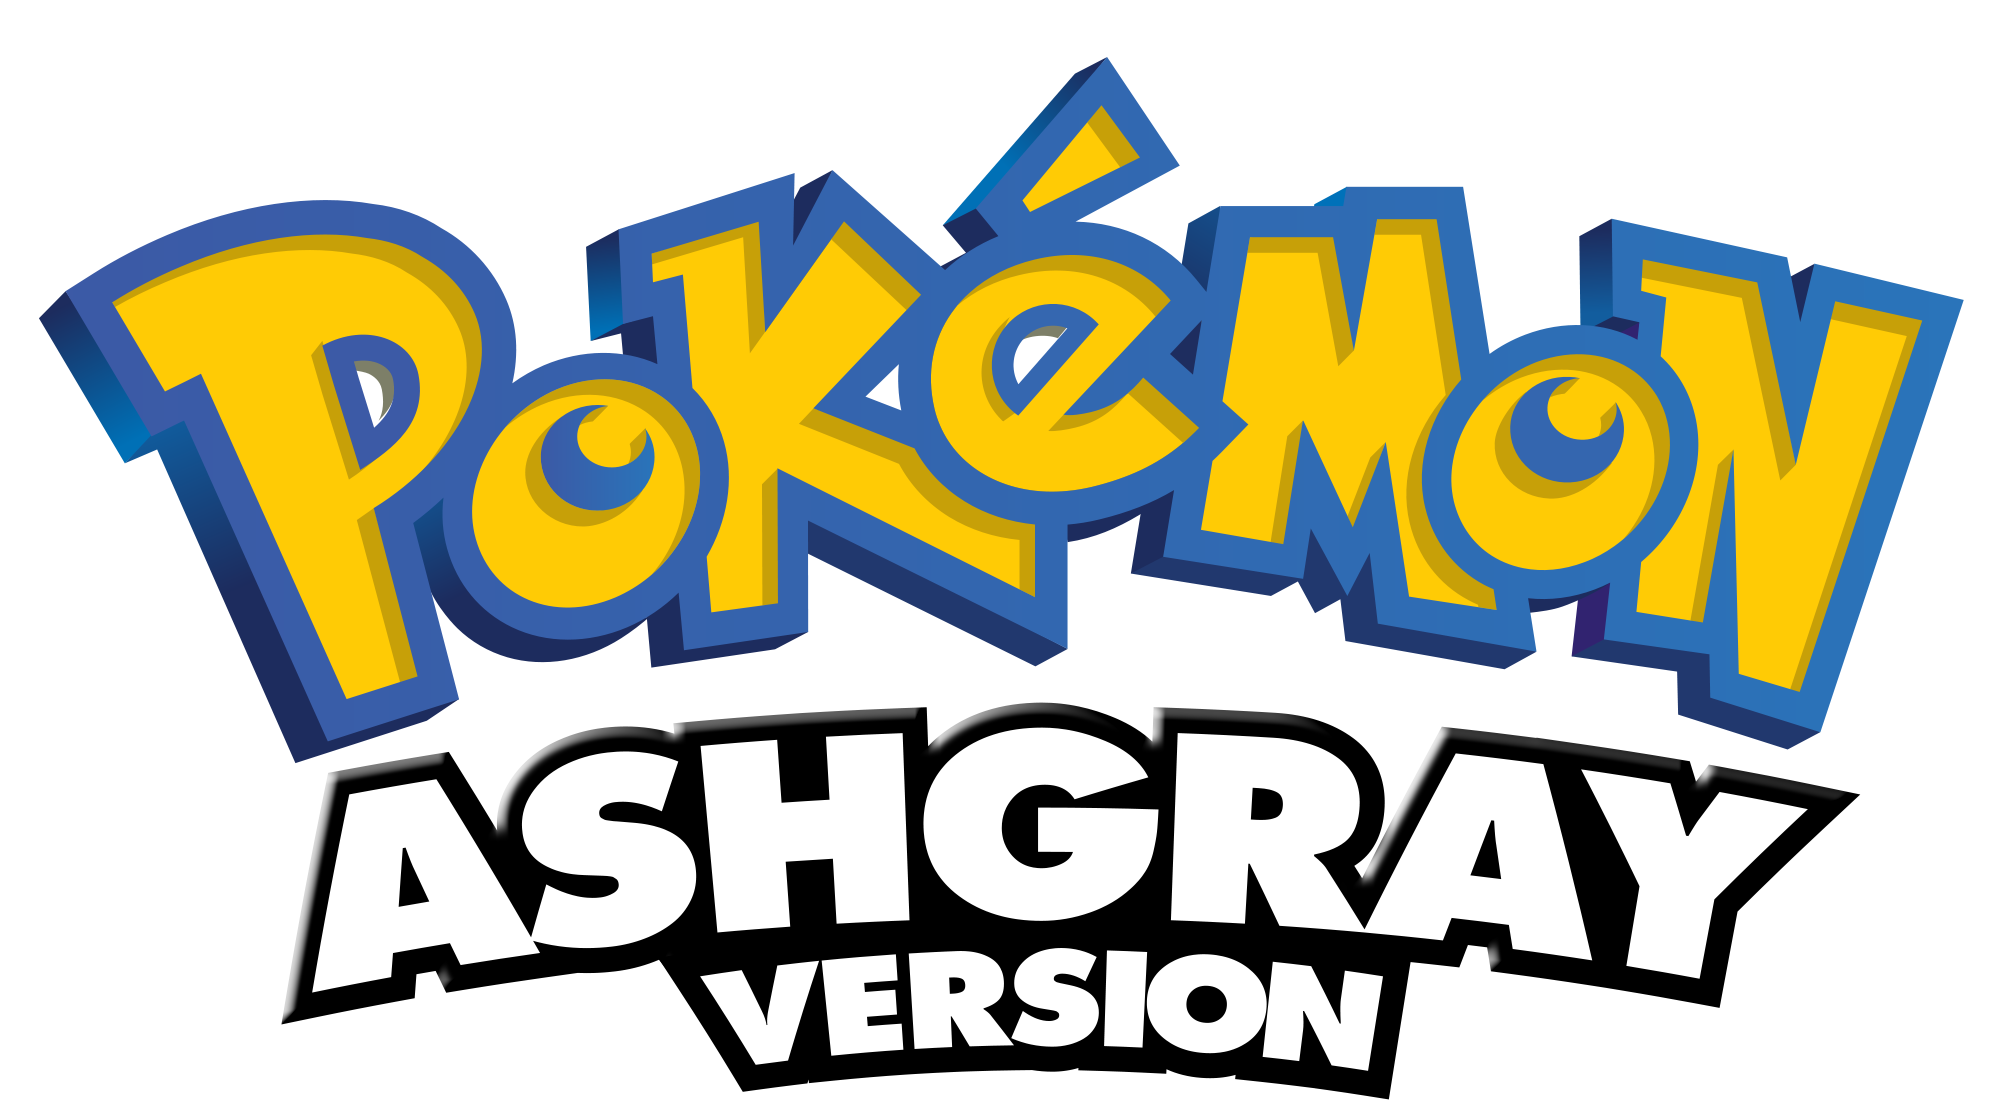 Pokemon logo text png #1428 - Free Transparent PNG Logos